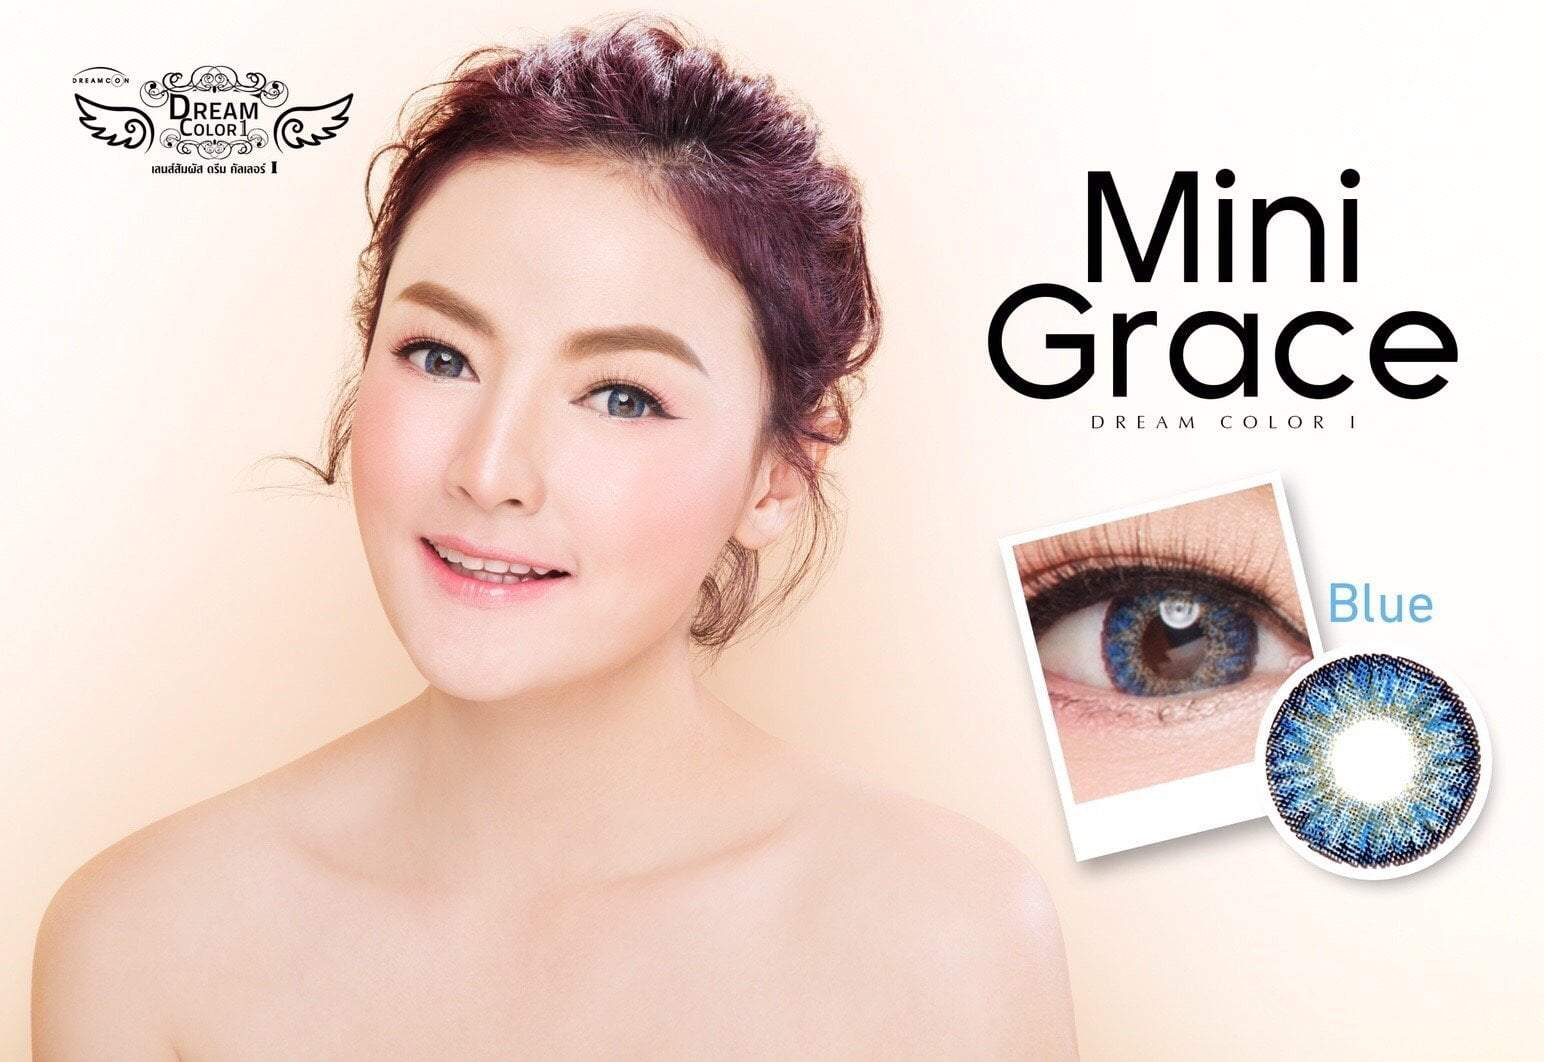 COLORED CONTACTS DREAM COLOR MINI GRACE BLUE - Lens Beauty Queen